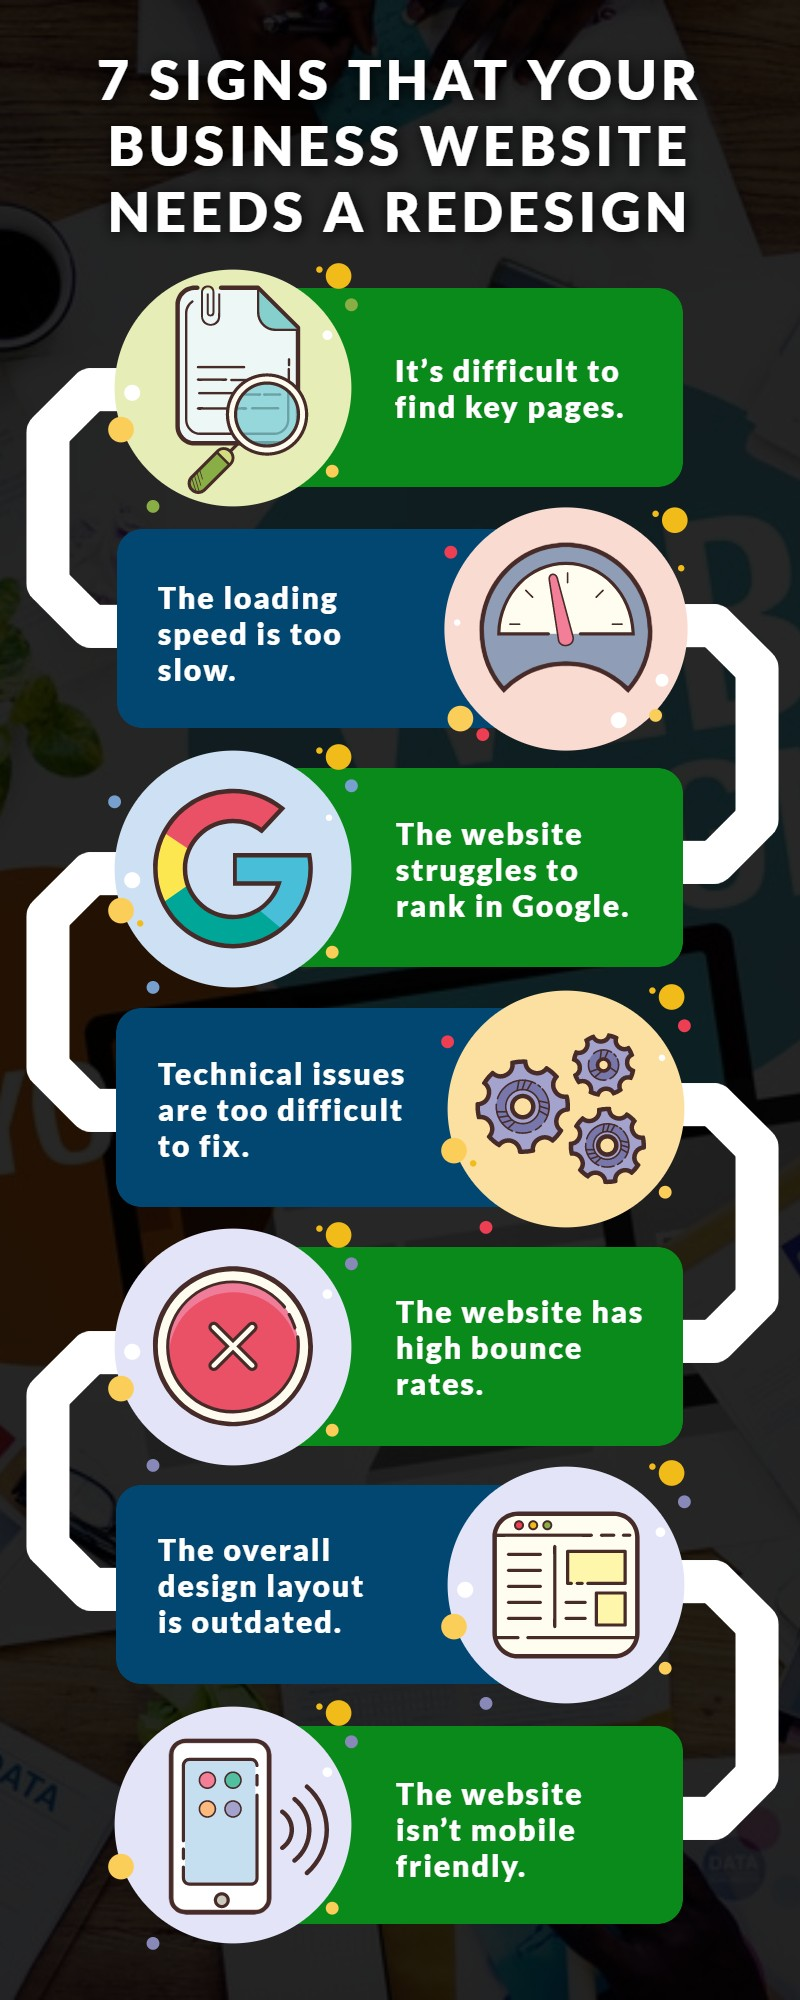 7 signs that your business website needs a redesign | WSI Ottawa